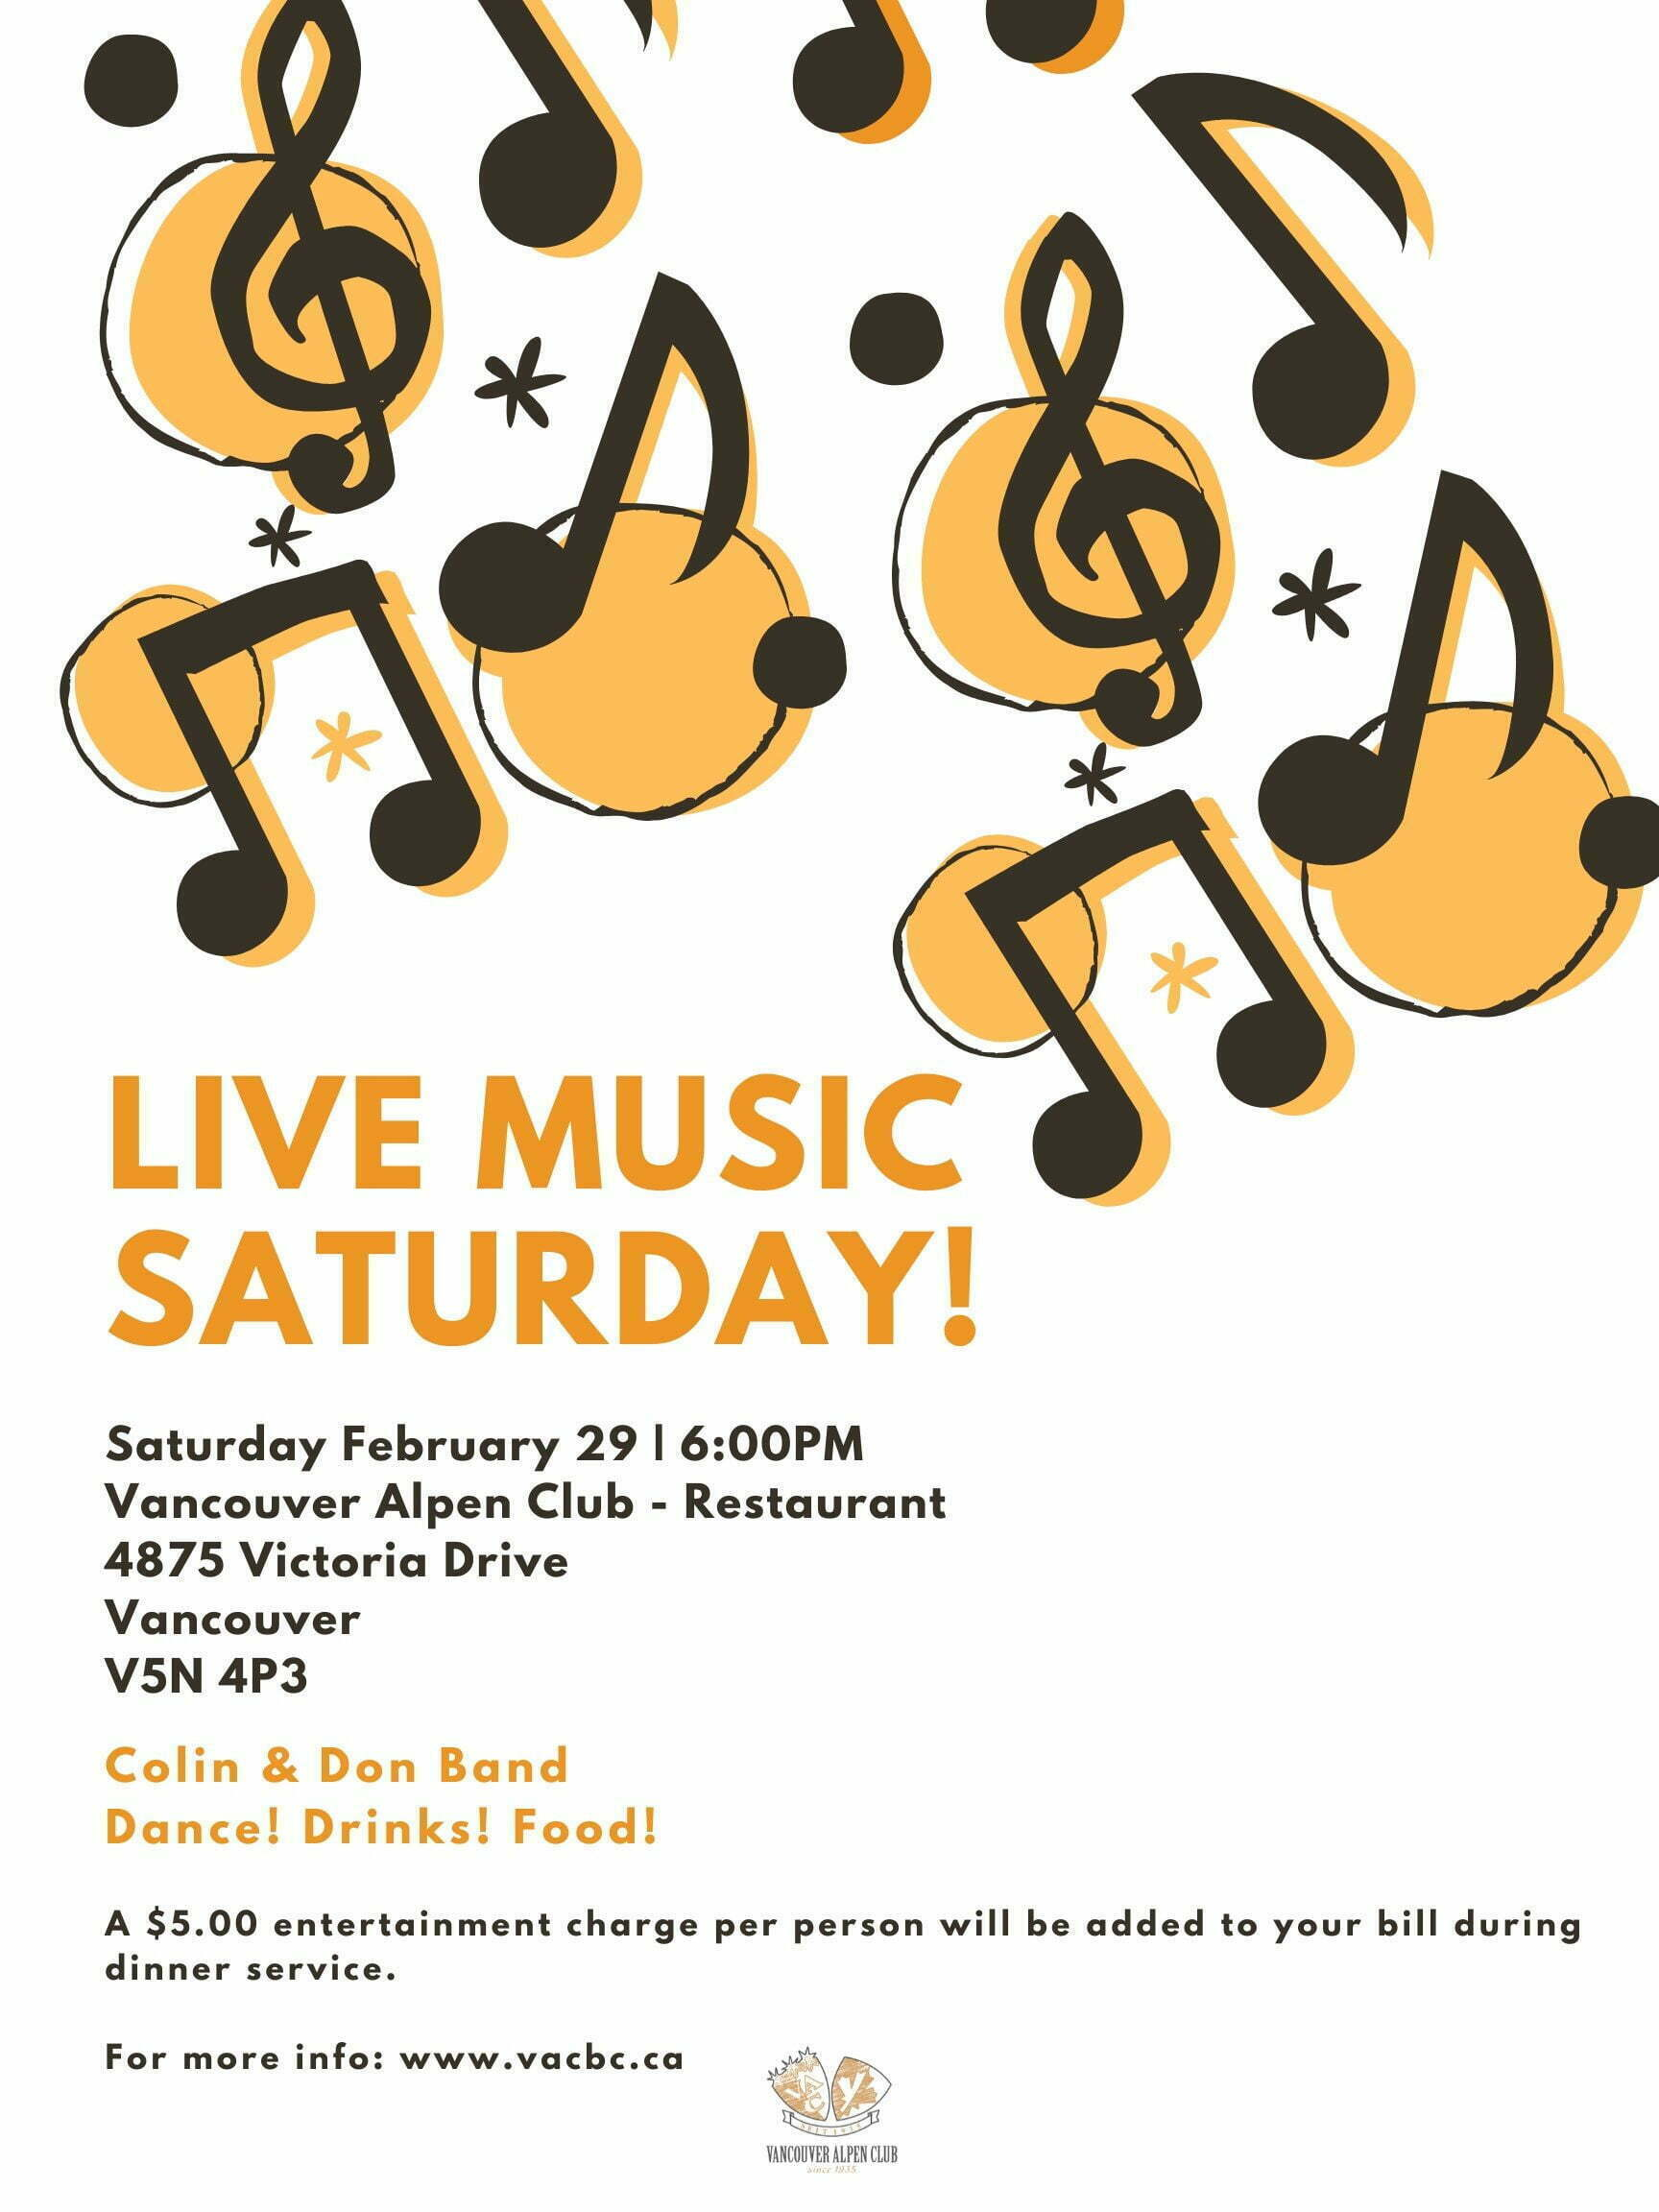 Live Music Saturday – Dance! Drinks! Food!